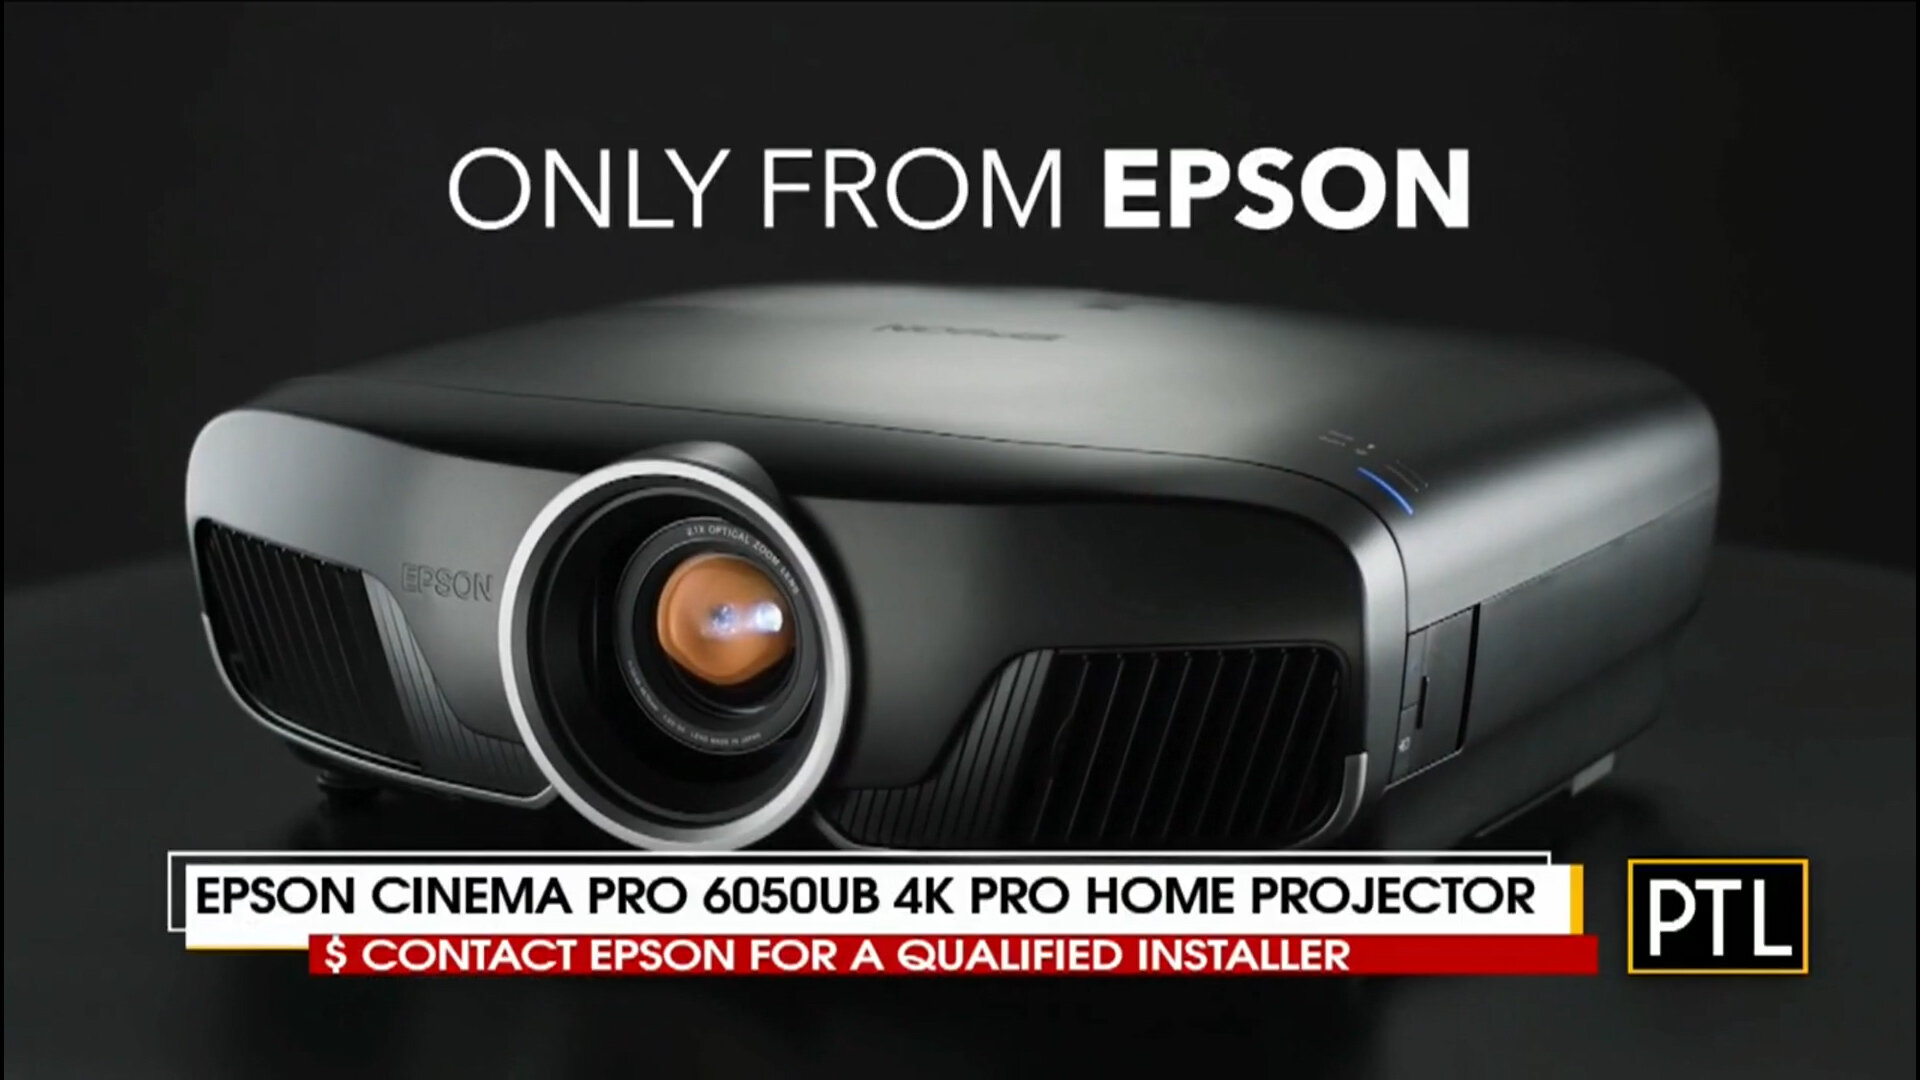 EPSON CINEMA PRO 6050UB 4K PRO HOME PROJECTOR - Contact EPSON for a Qualified A-V InstallerShop Now